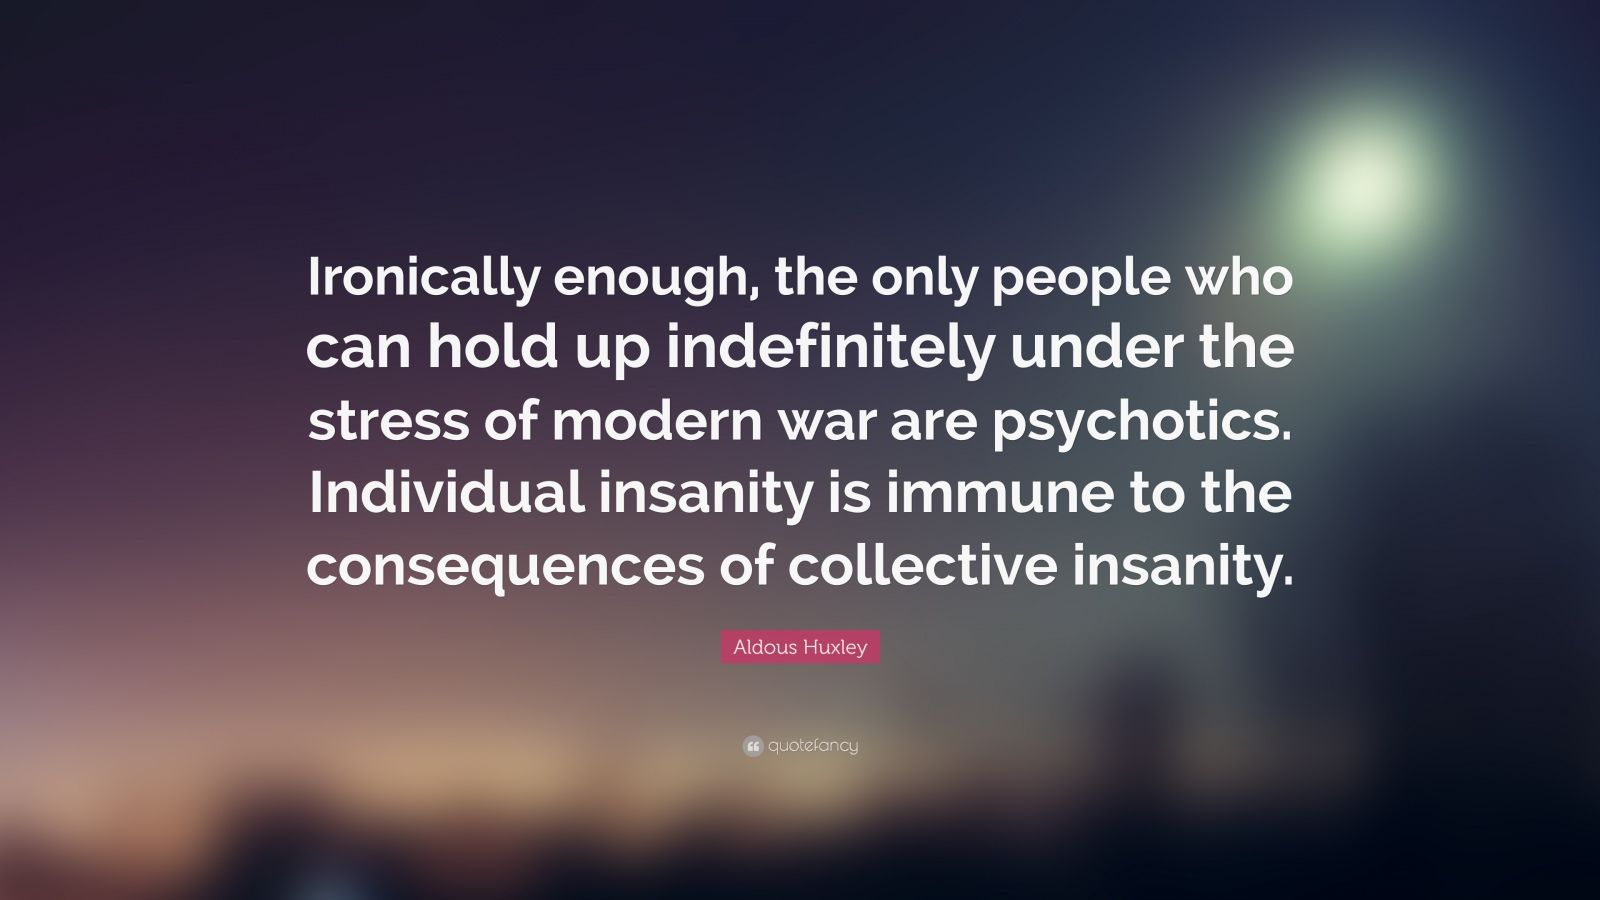 """Aldous Huxley Quote: """"Ironically enough, the only people who can hold up indefinitely under the stress of modern war are psychotics. Individual insanity is immune to the consequences of collective insanity."""""""